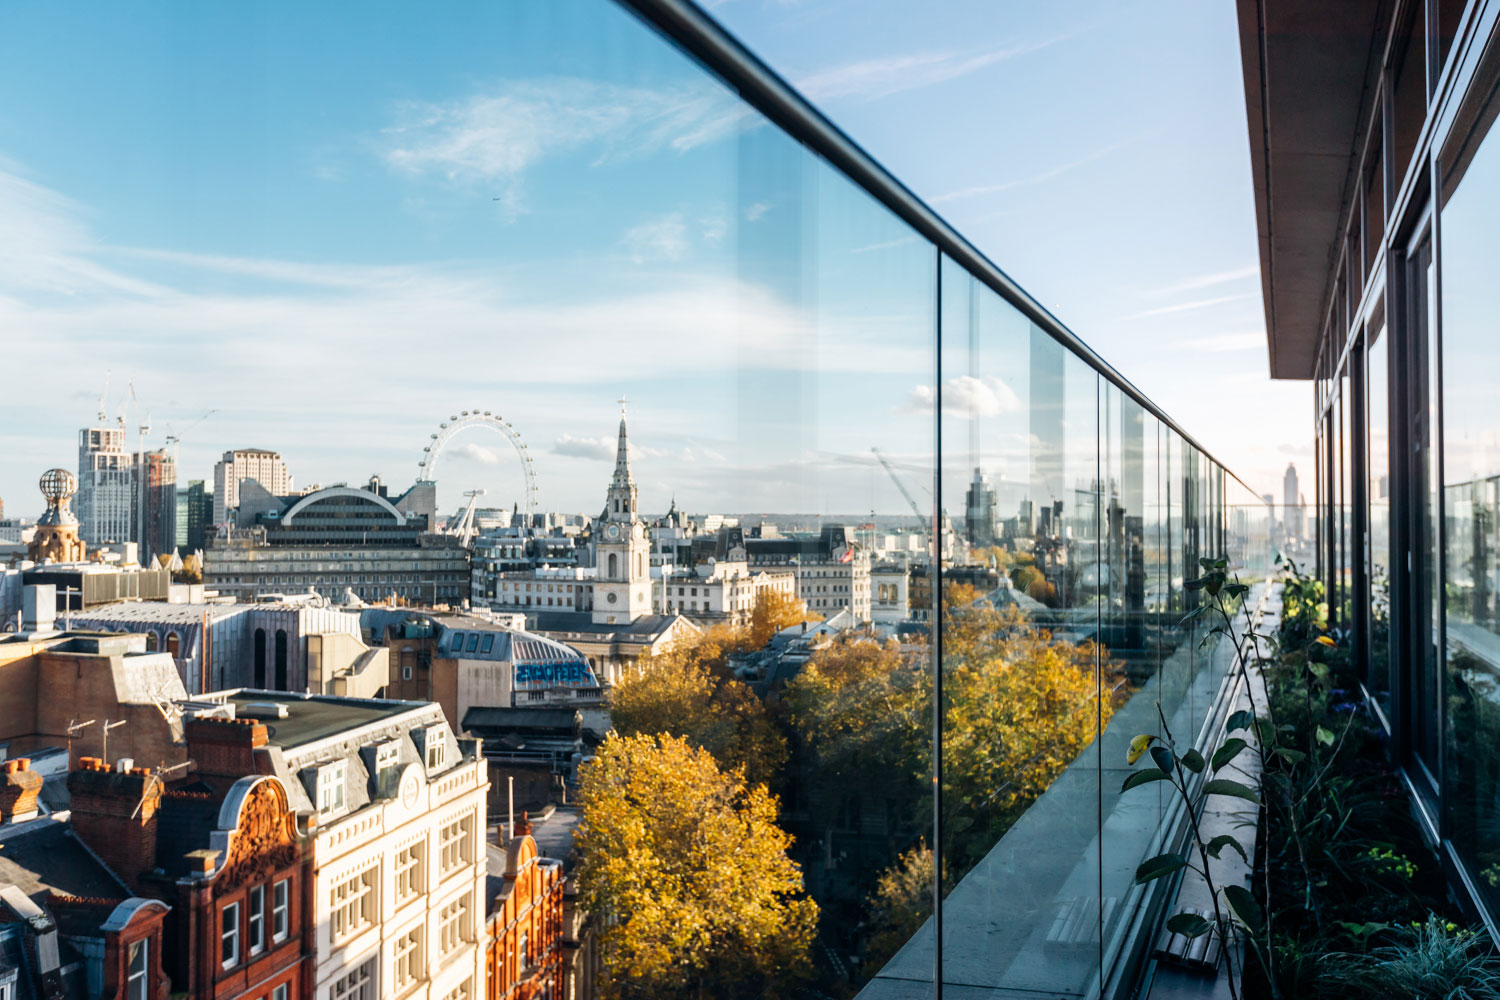 the view - Vast floor to ceiling glass windows frame the room, offering every seat in Garden Room spectacular views across central London. Iconic landmarks, such as the London Eye, The Shard and Nelson's Column, can be easily spotted providing an unmissable, stunning backdrop for dinner and drinks.